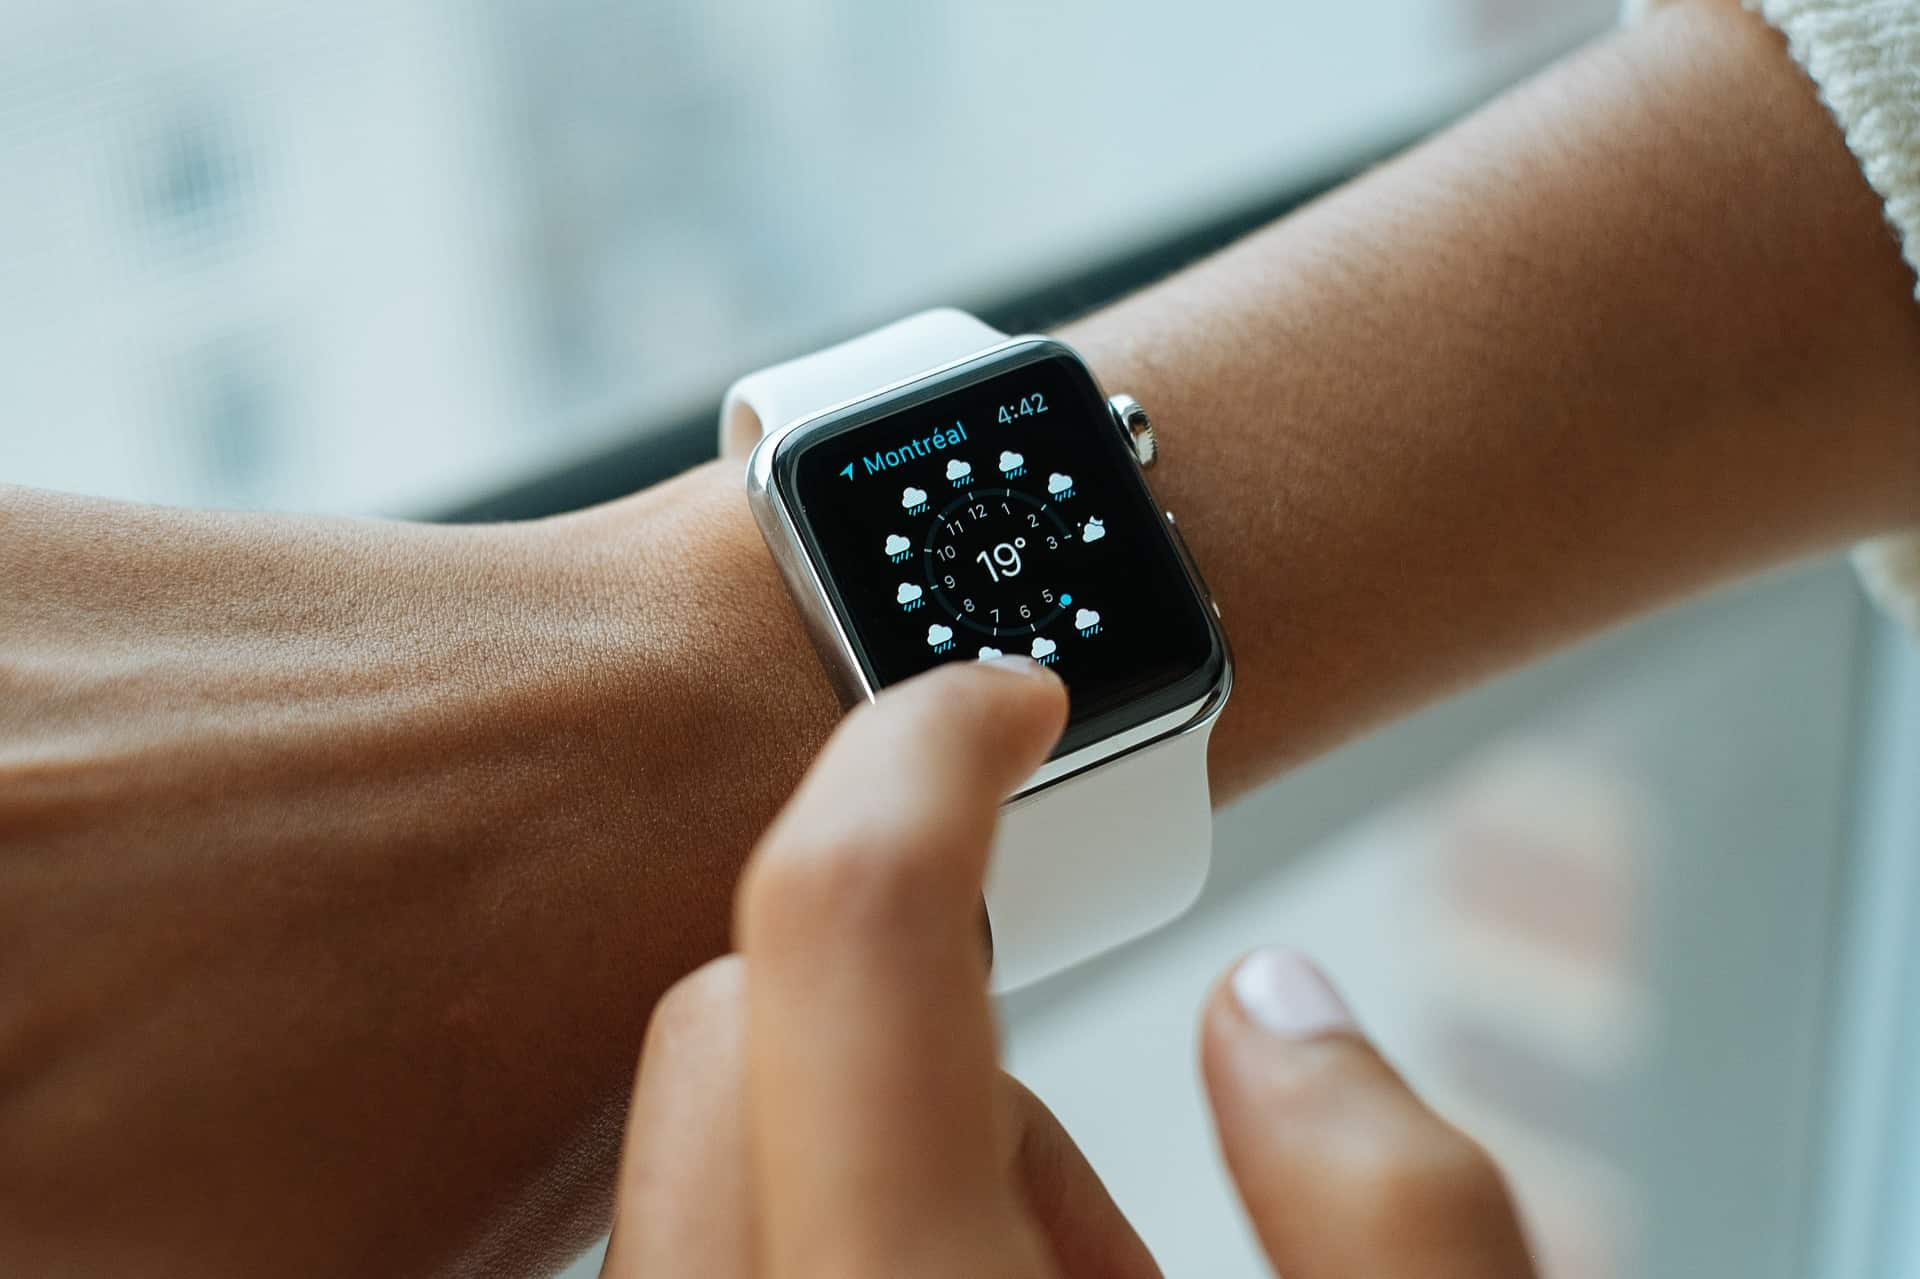 Apple transforming gadget Watch to medical device